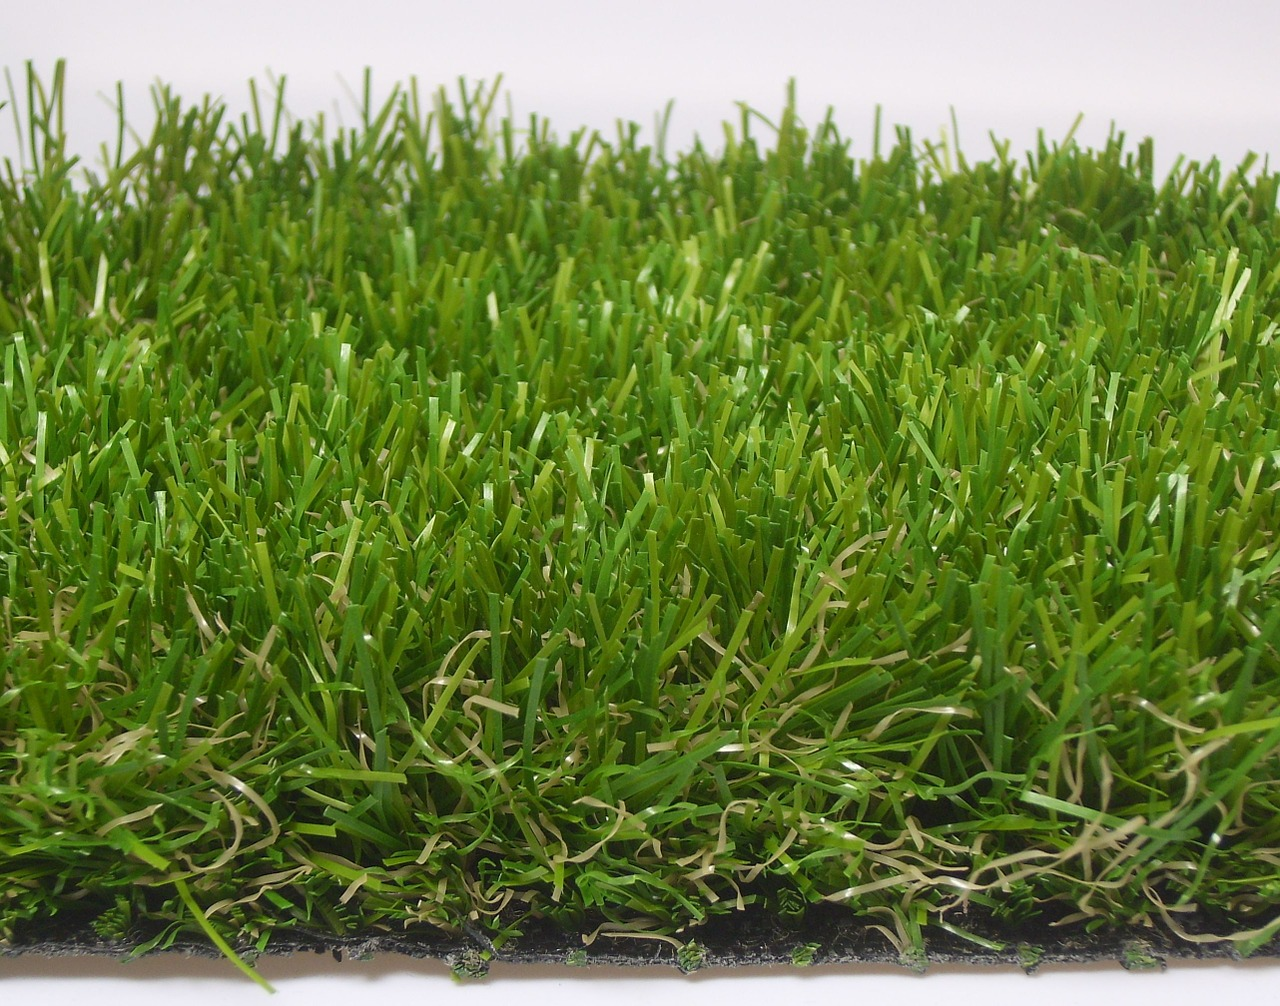 Natural Grass vs. Artificial Turf in Arizona